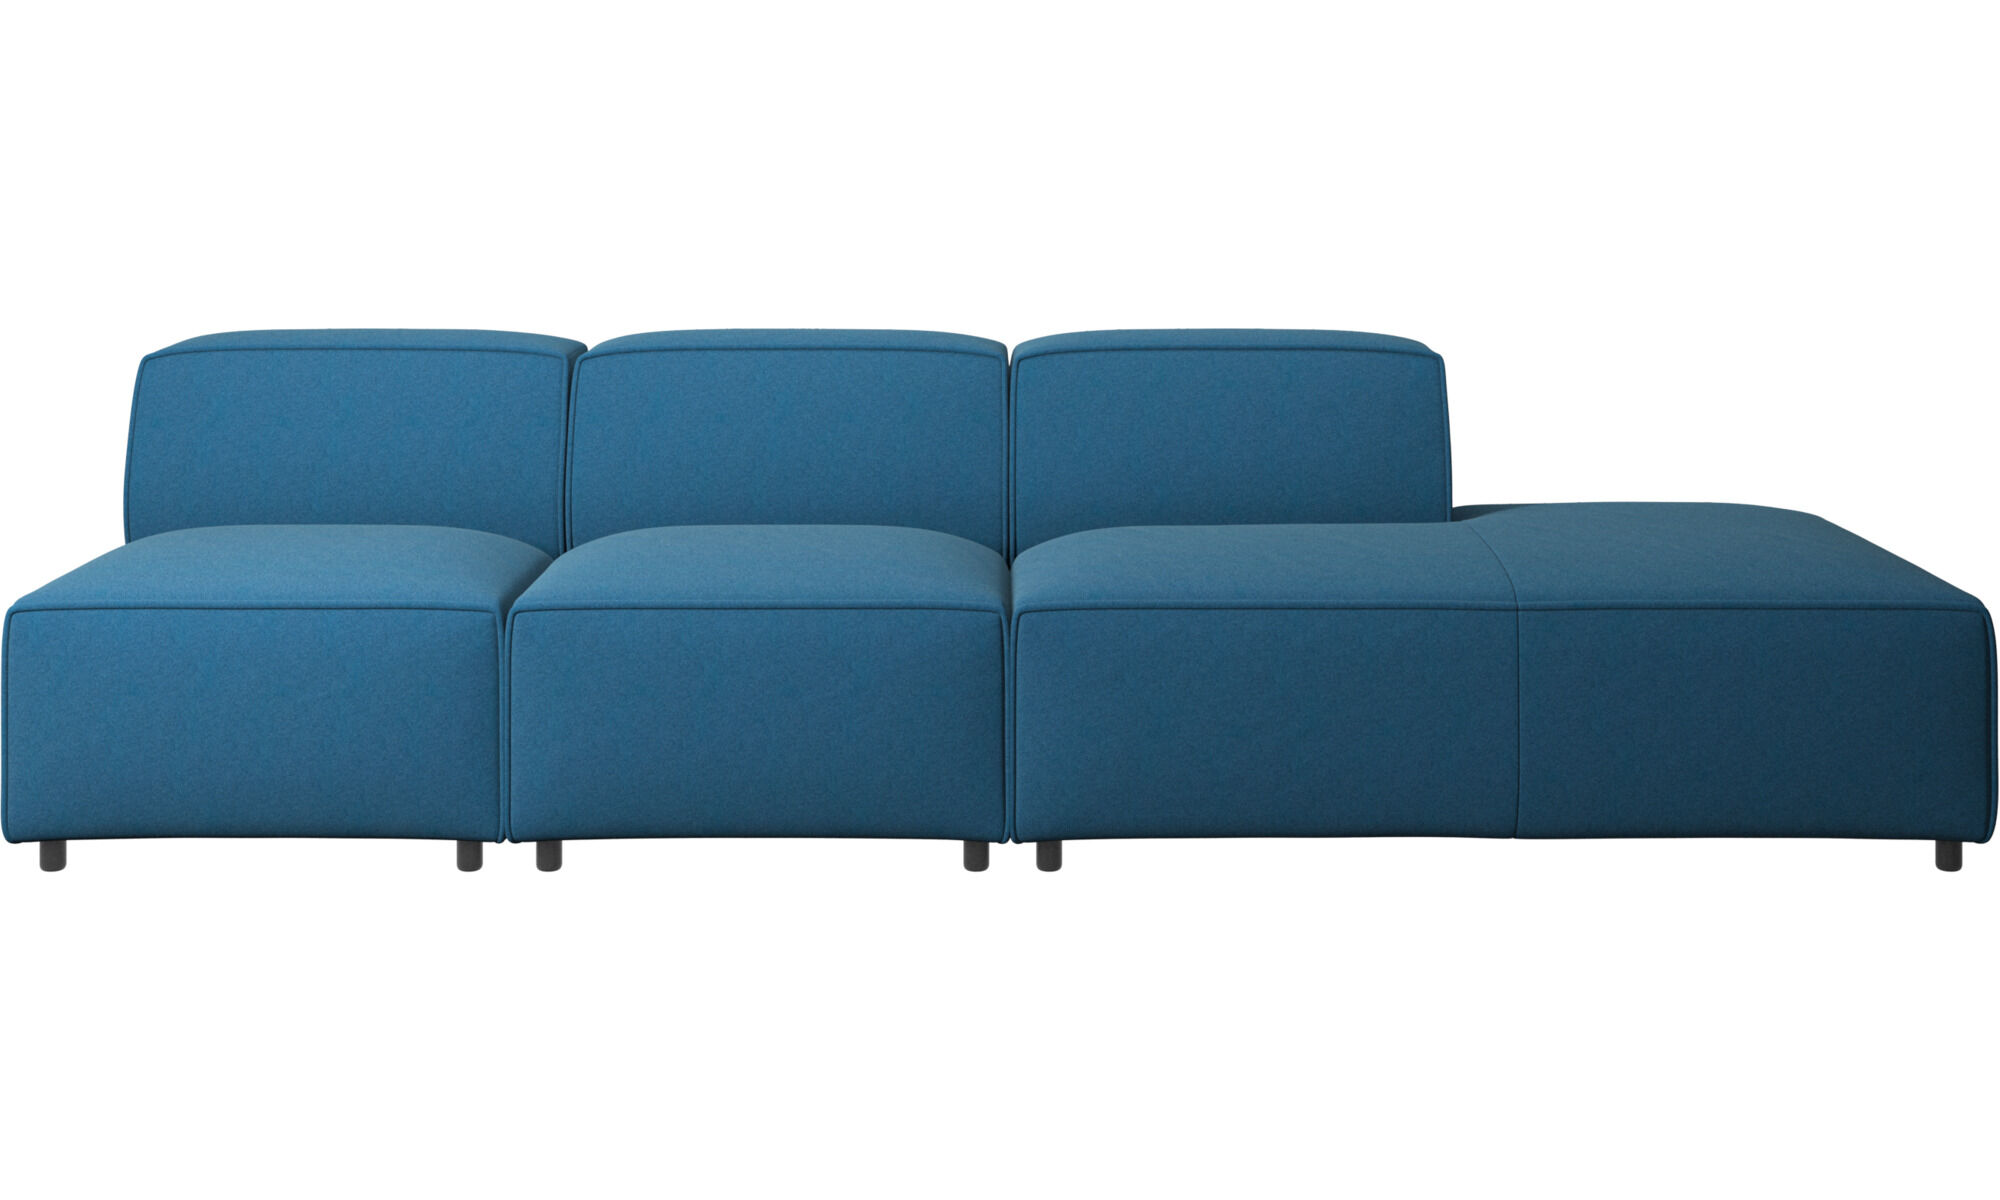 Charmant Sofas With Open End   Carmo Sofa With Lounging Unit   Blue   Fabric ...